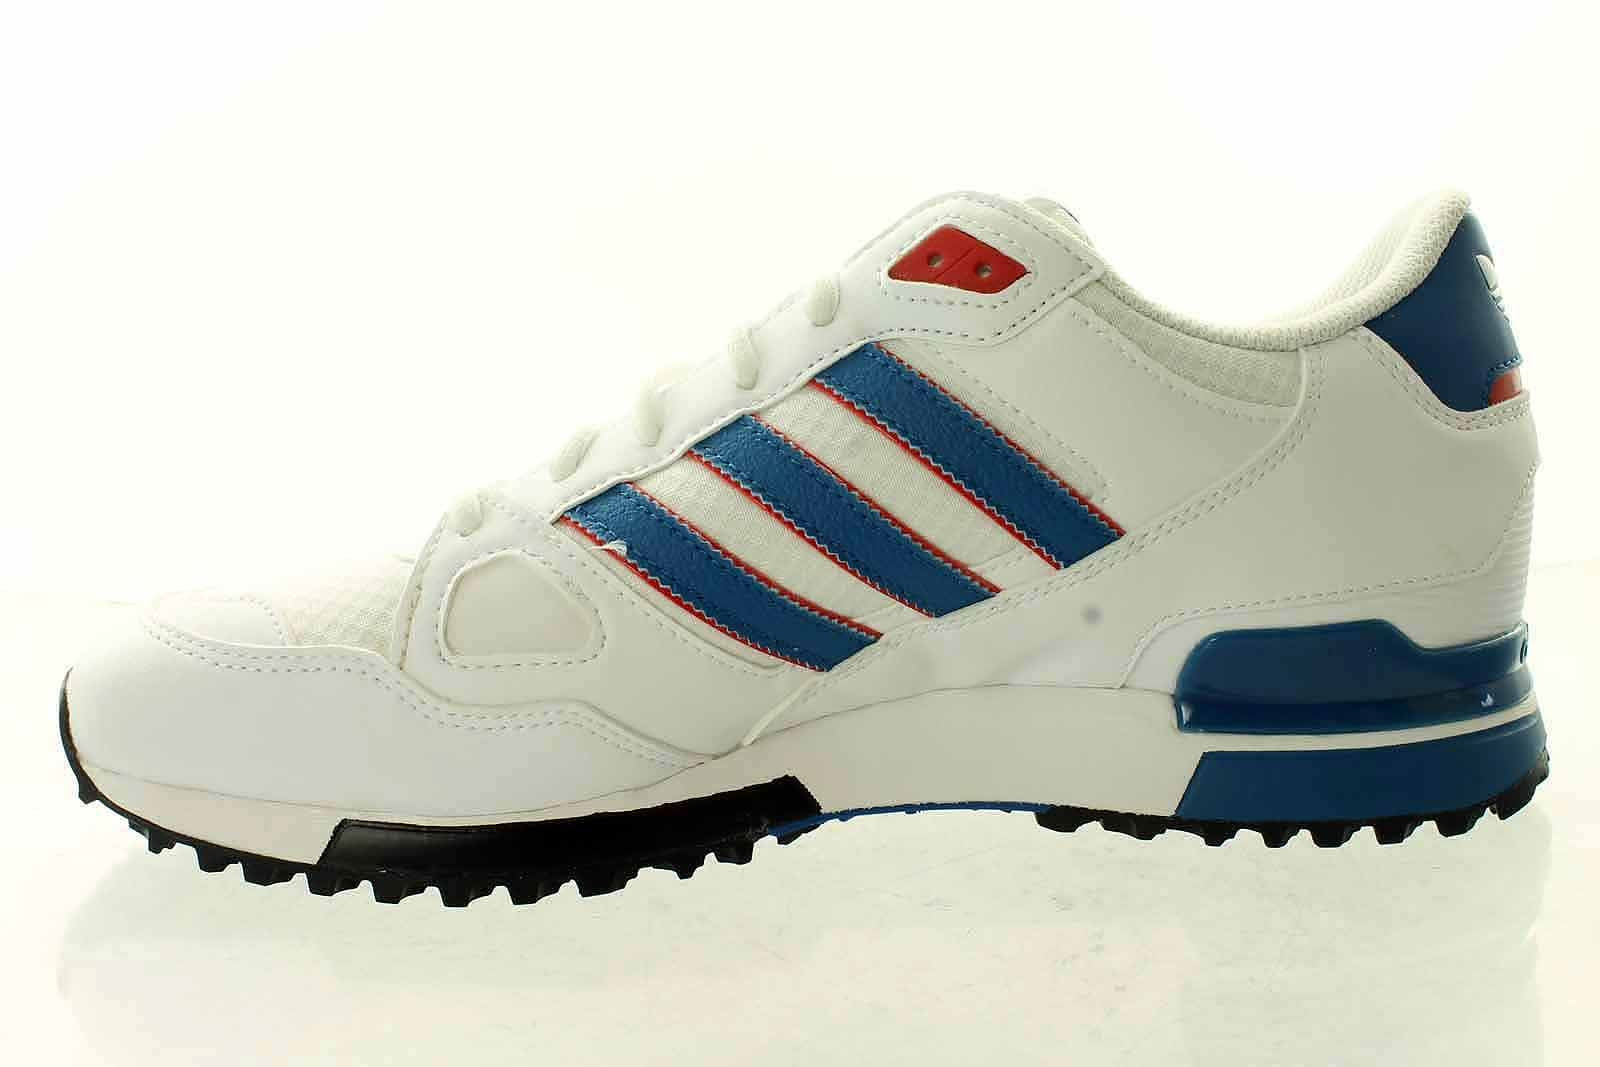 new style 8f514 e7bc6 adidas-ZX-750-Mens-Trainers-Originals-UK-3-